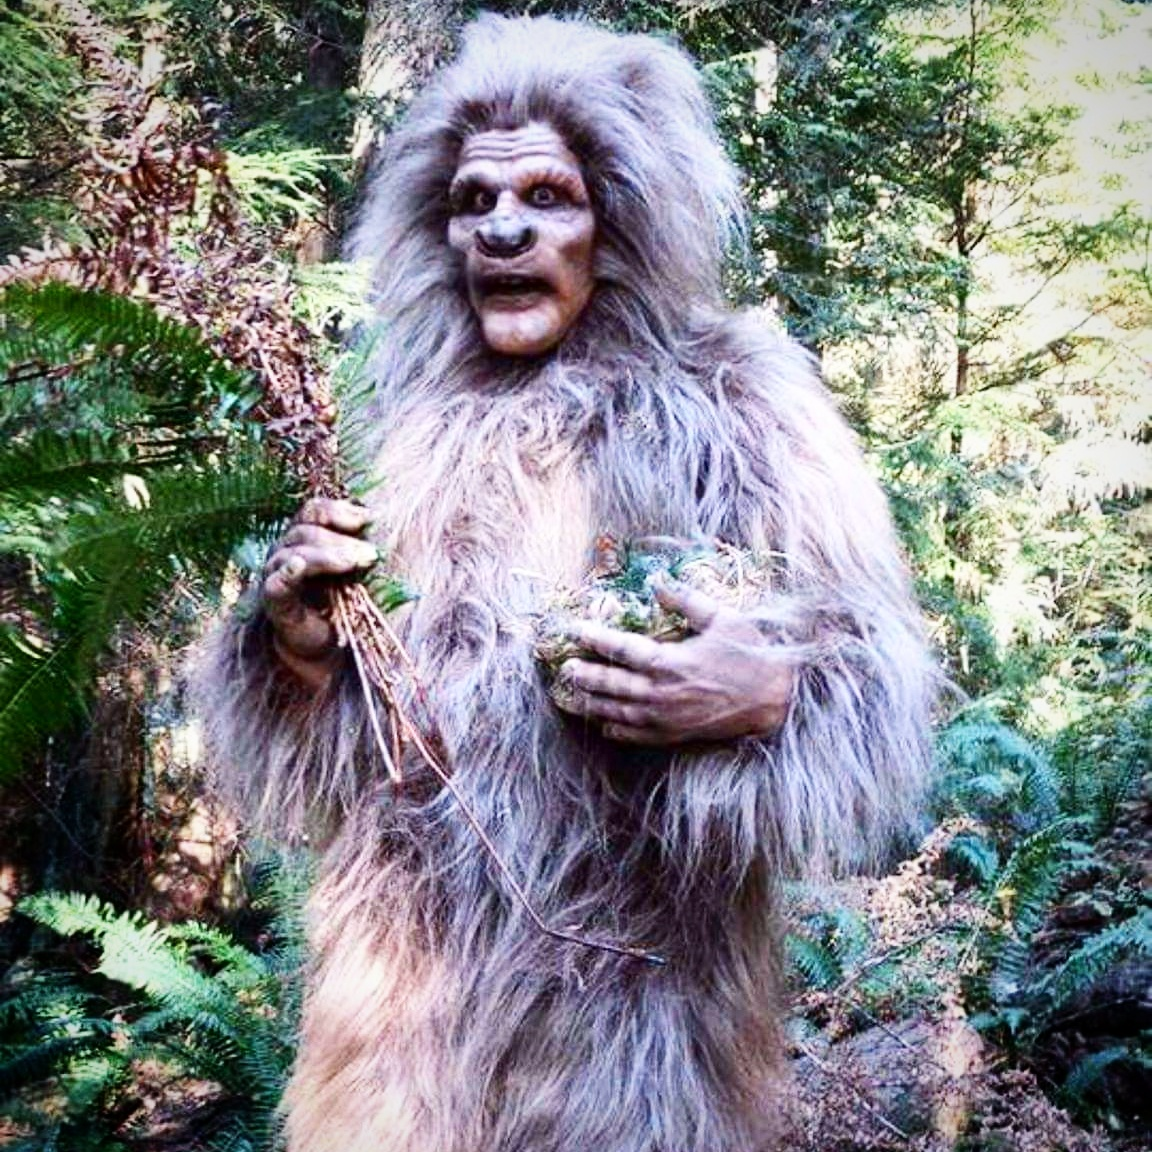 Sasquatch. Creature design and build by Epic Fx (Cayley Giene) for cocomilk tv's Paranormal Solutions Inc.